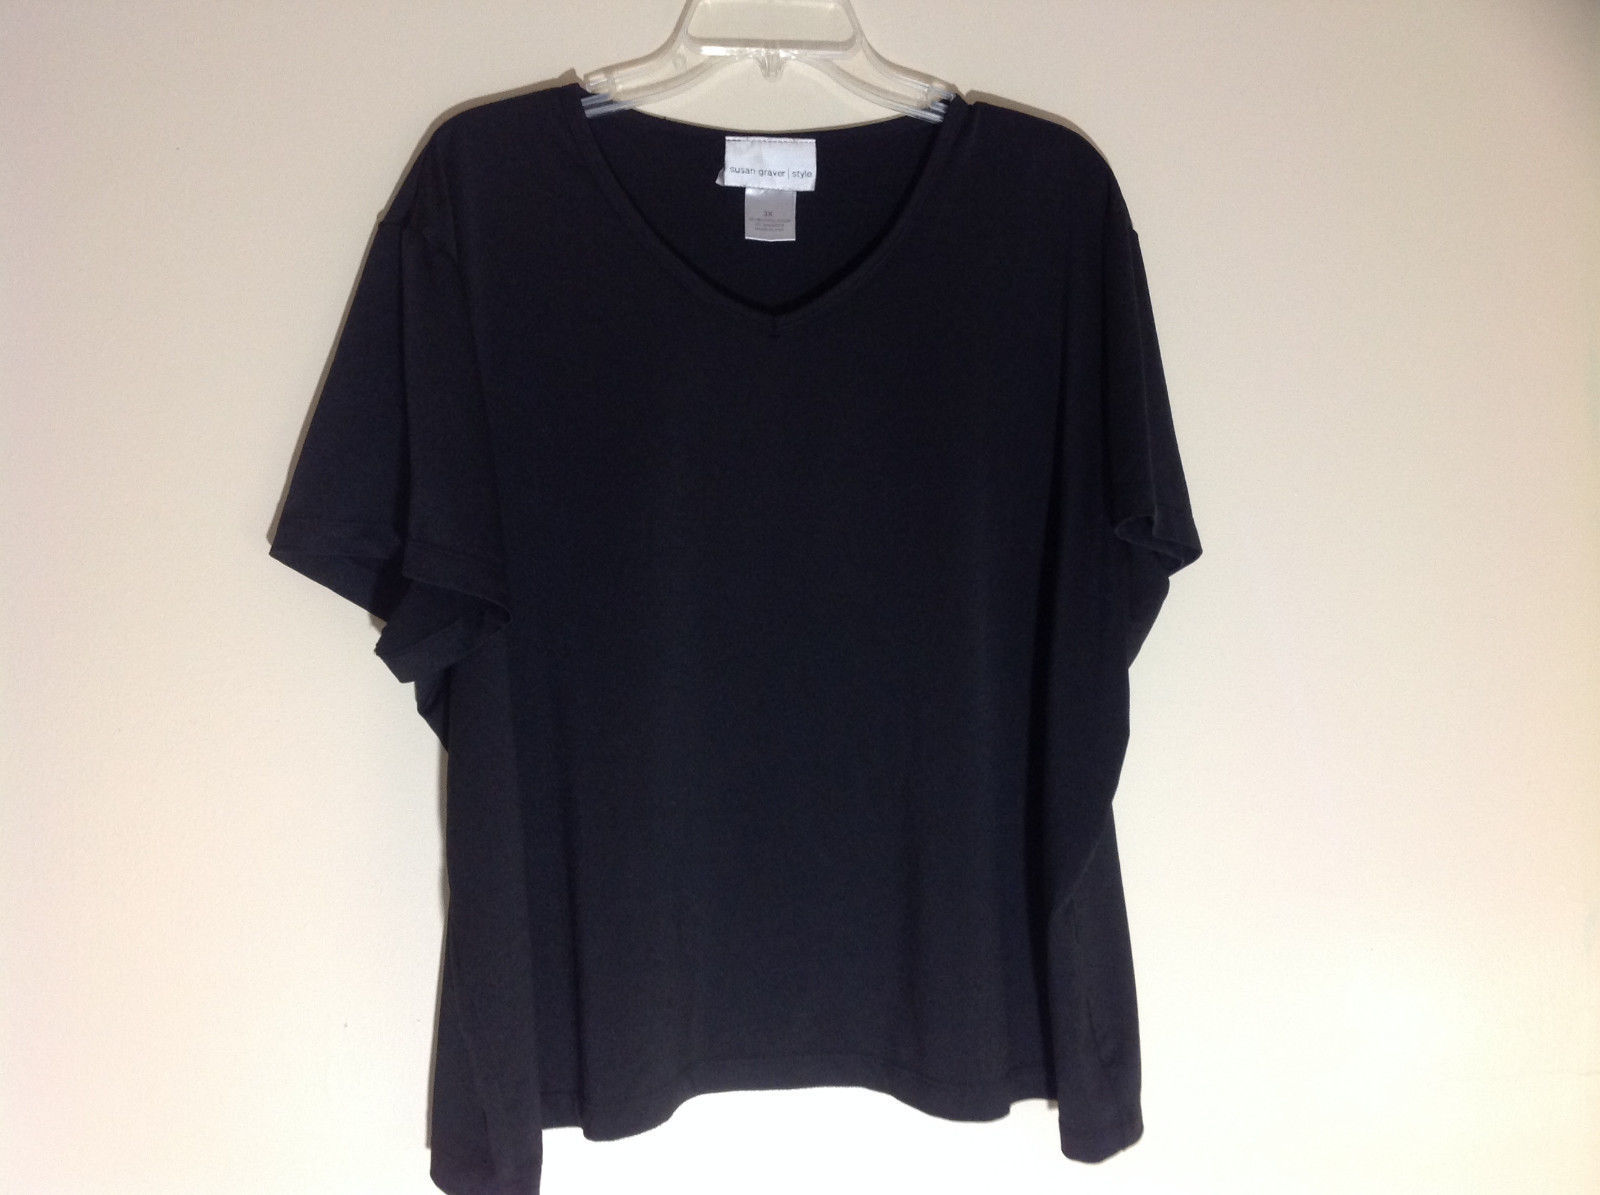 Susan Graver Black V-Neck Short  Sleeve Shirt  Size 3X